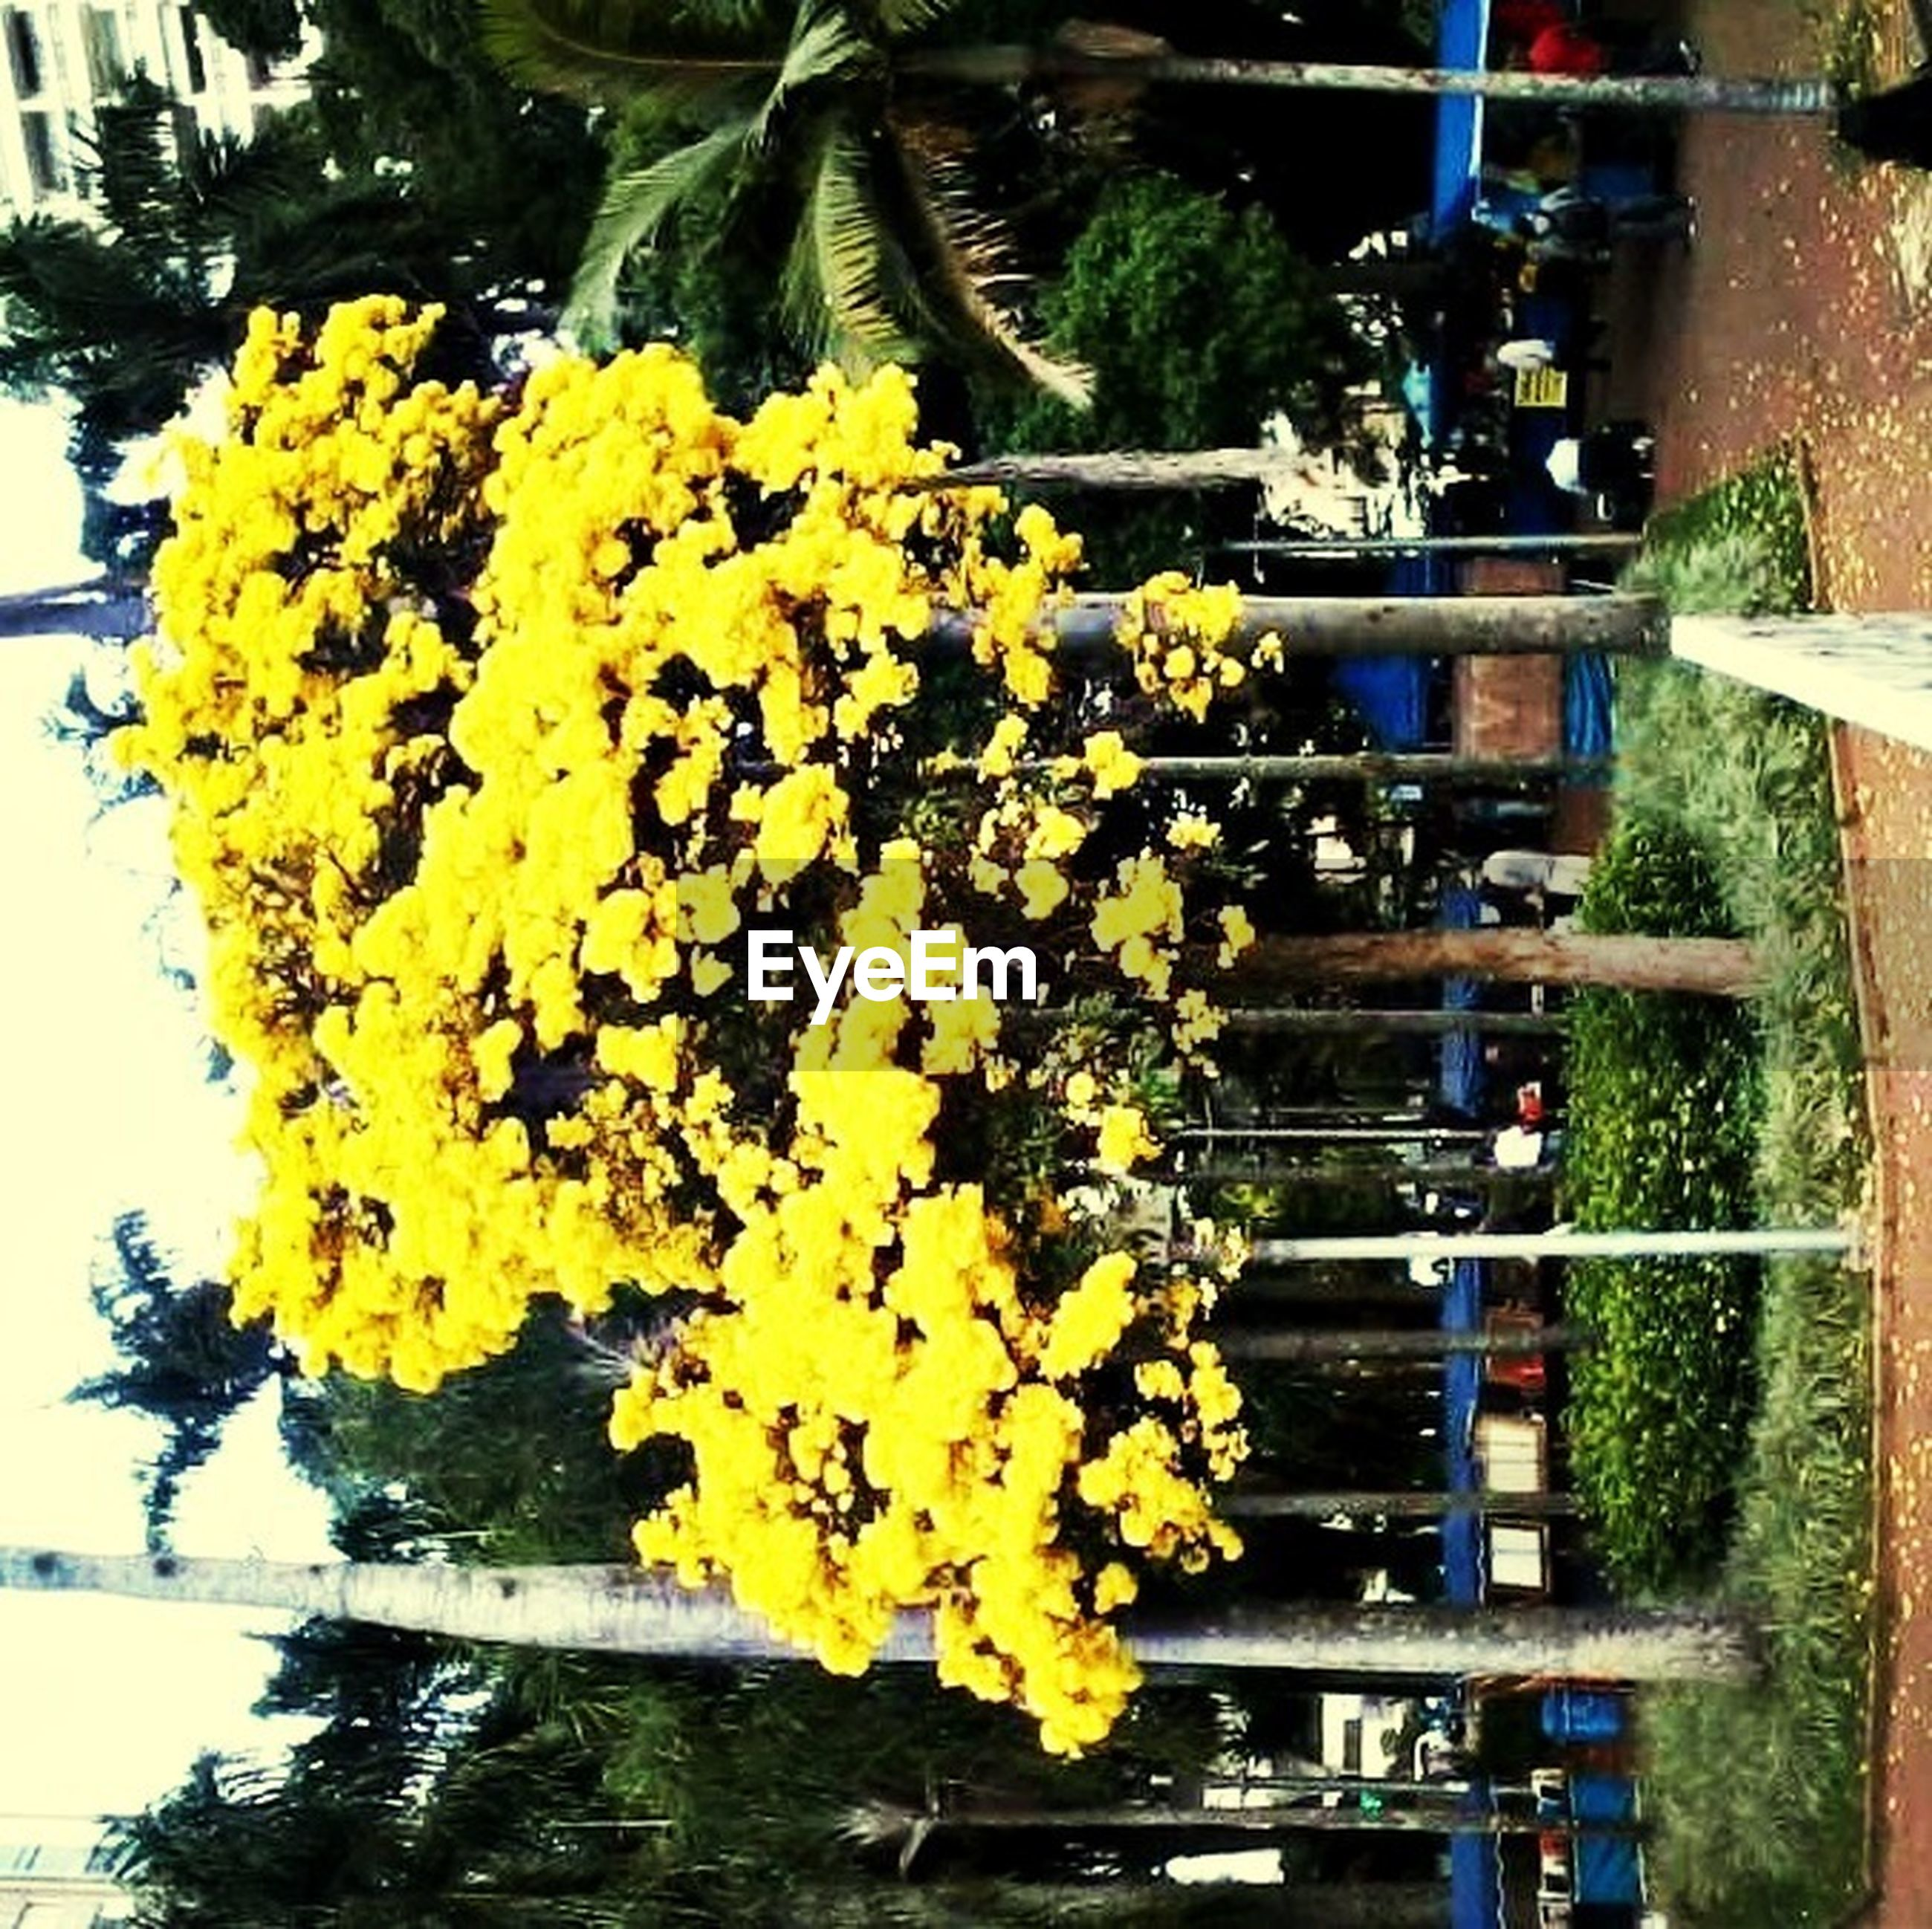 flower, yellow, freshness, building exterior, built structure, architecture, growth, plant, incidental people, day, outdoors, fragility, nature, men, potted plant, water, tree, person, petal